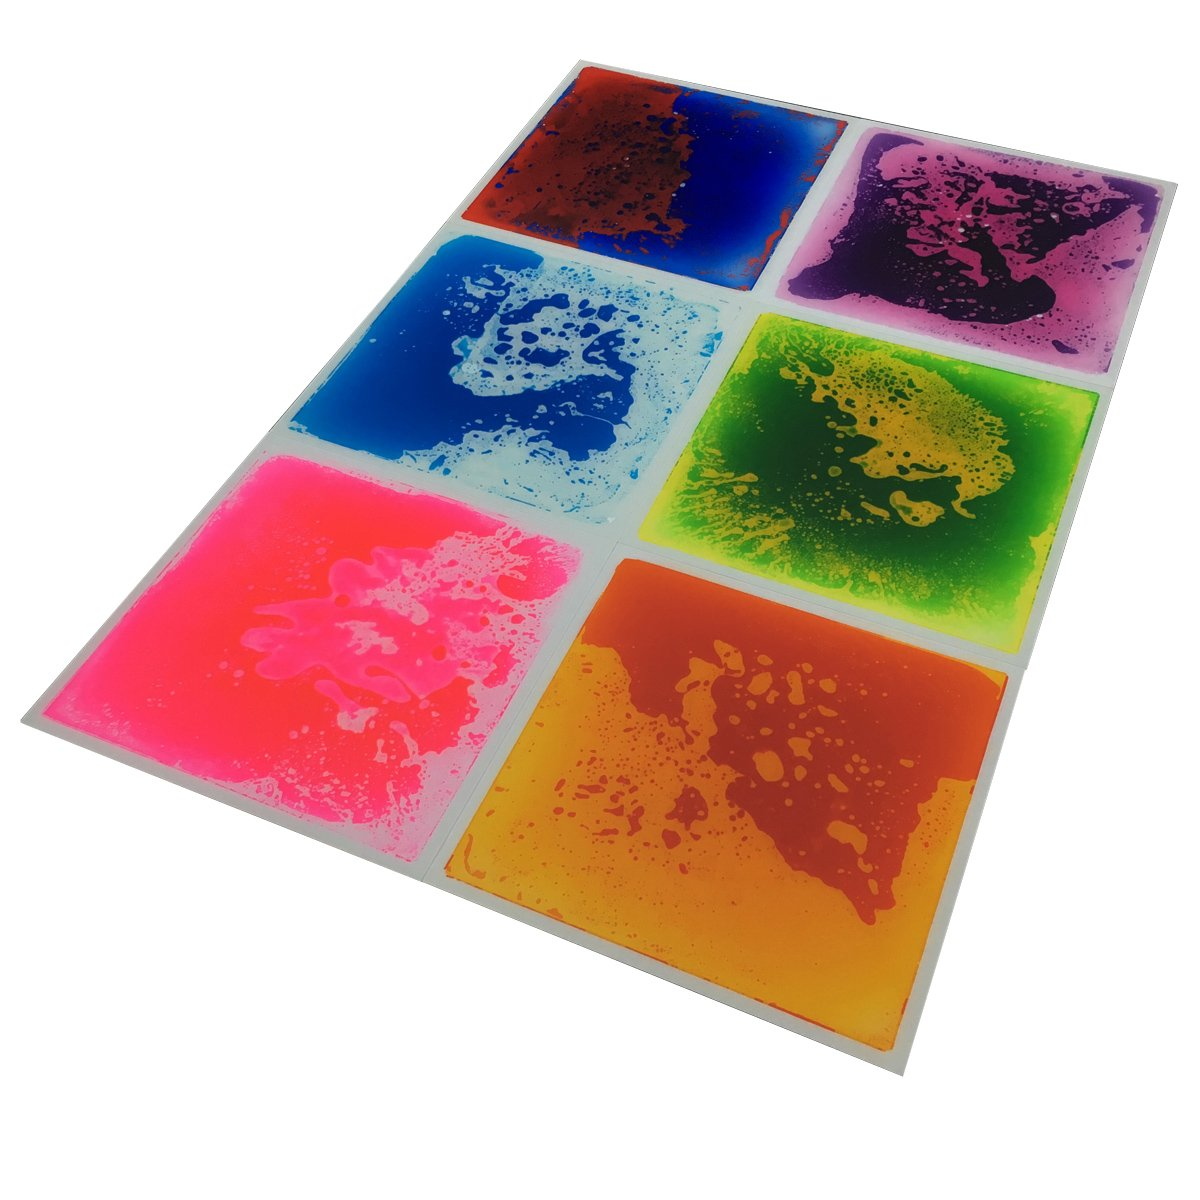 Art3d Multi-Color Exercise Mat Liquid Encased Fancy Playmat Kids Safety Play Floor Tile